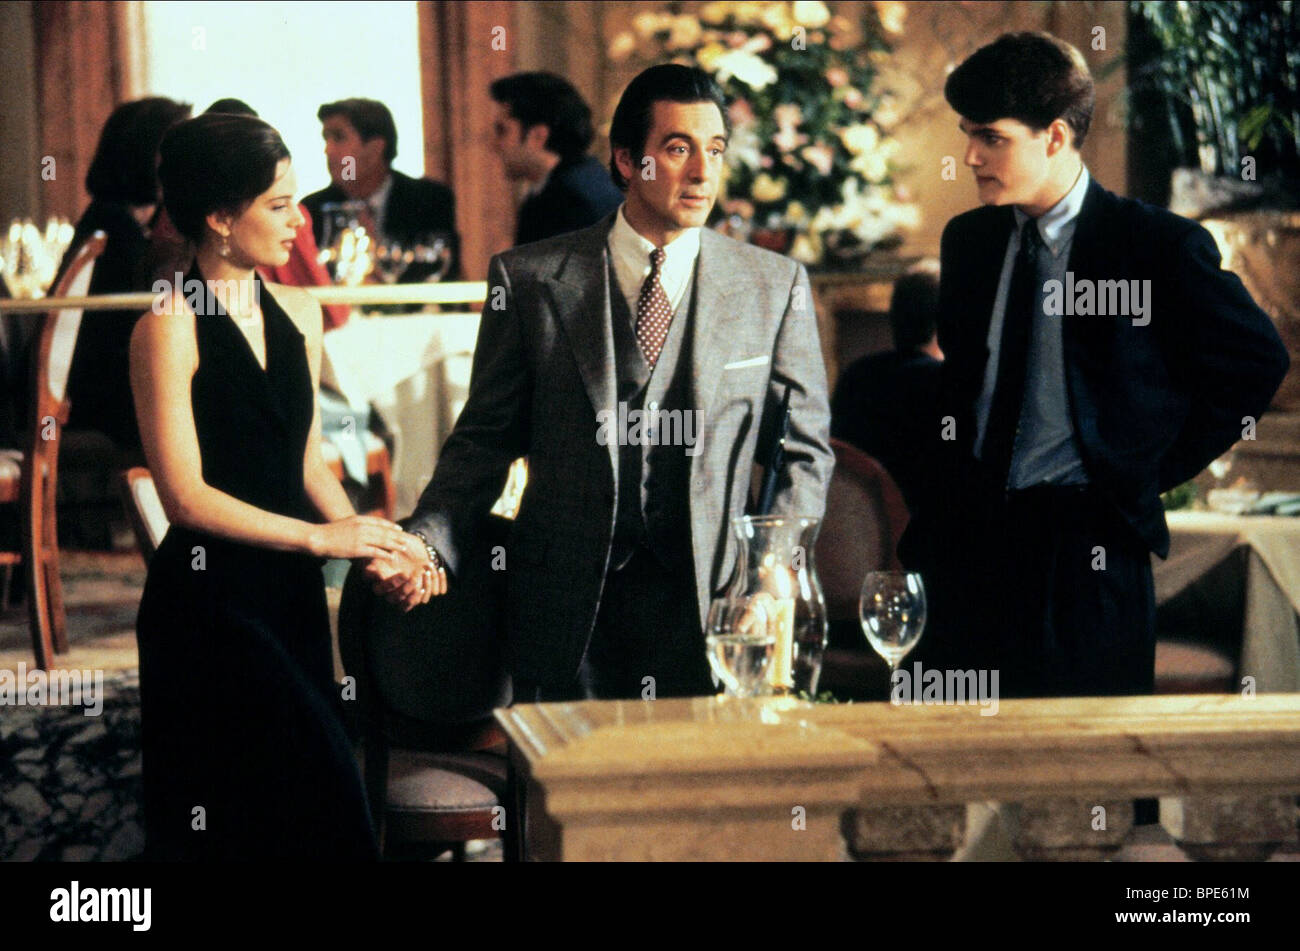 Gabrielle Anwar Al Pacino Chris O Donnell Scent Of A Woman 1992 Stock Photo Alamy